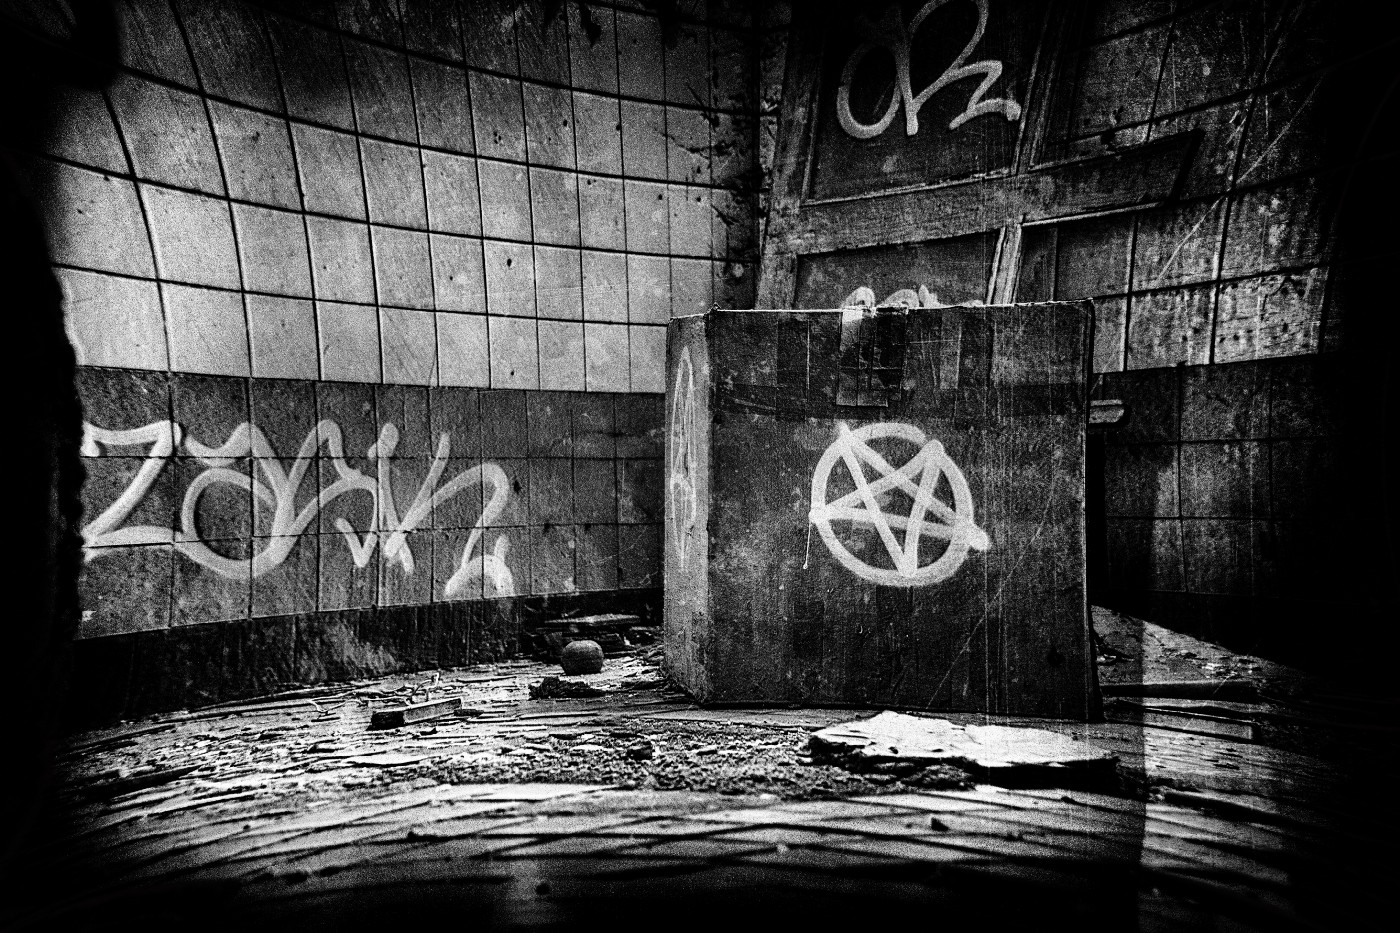 A black and white photo of an abandoned building with a pentagram spray-painted on a wall.